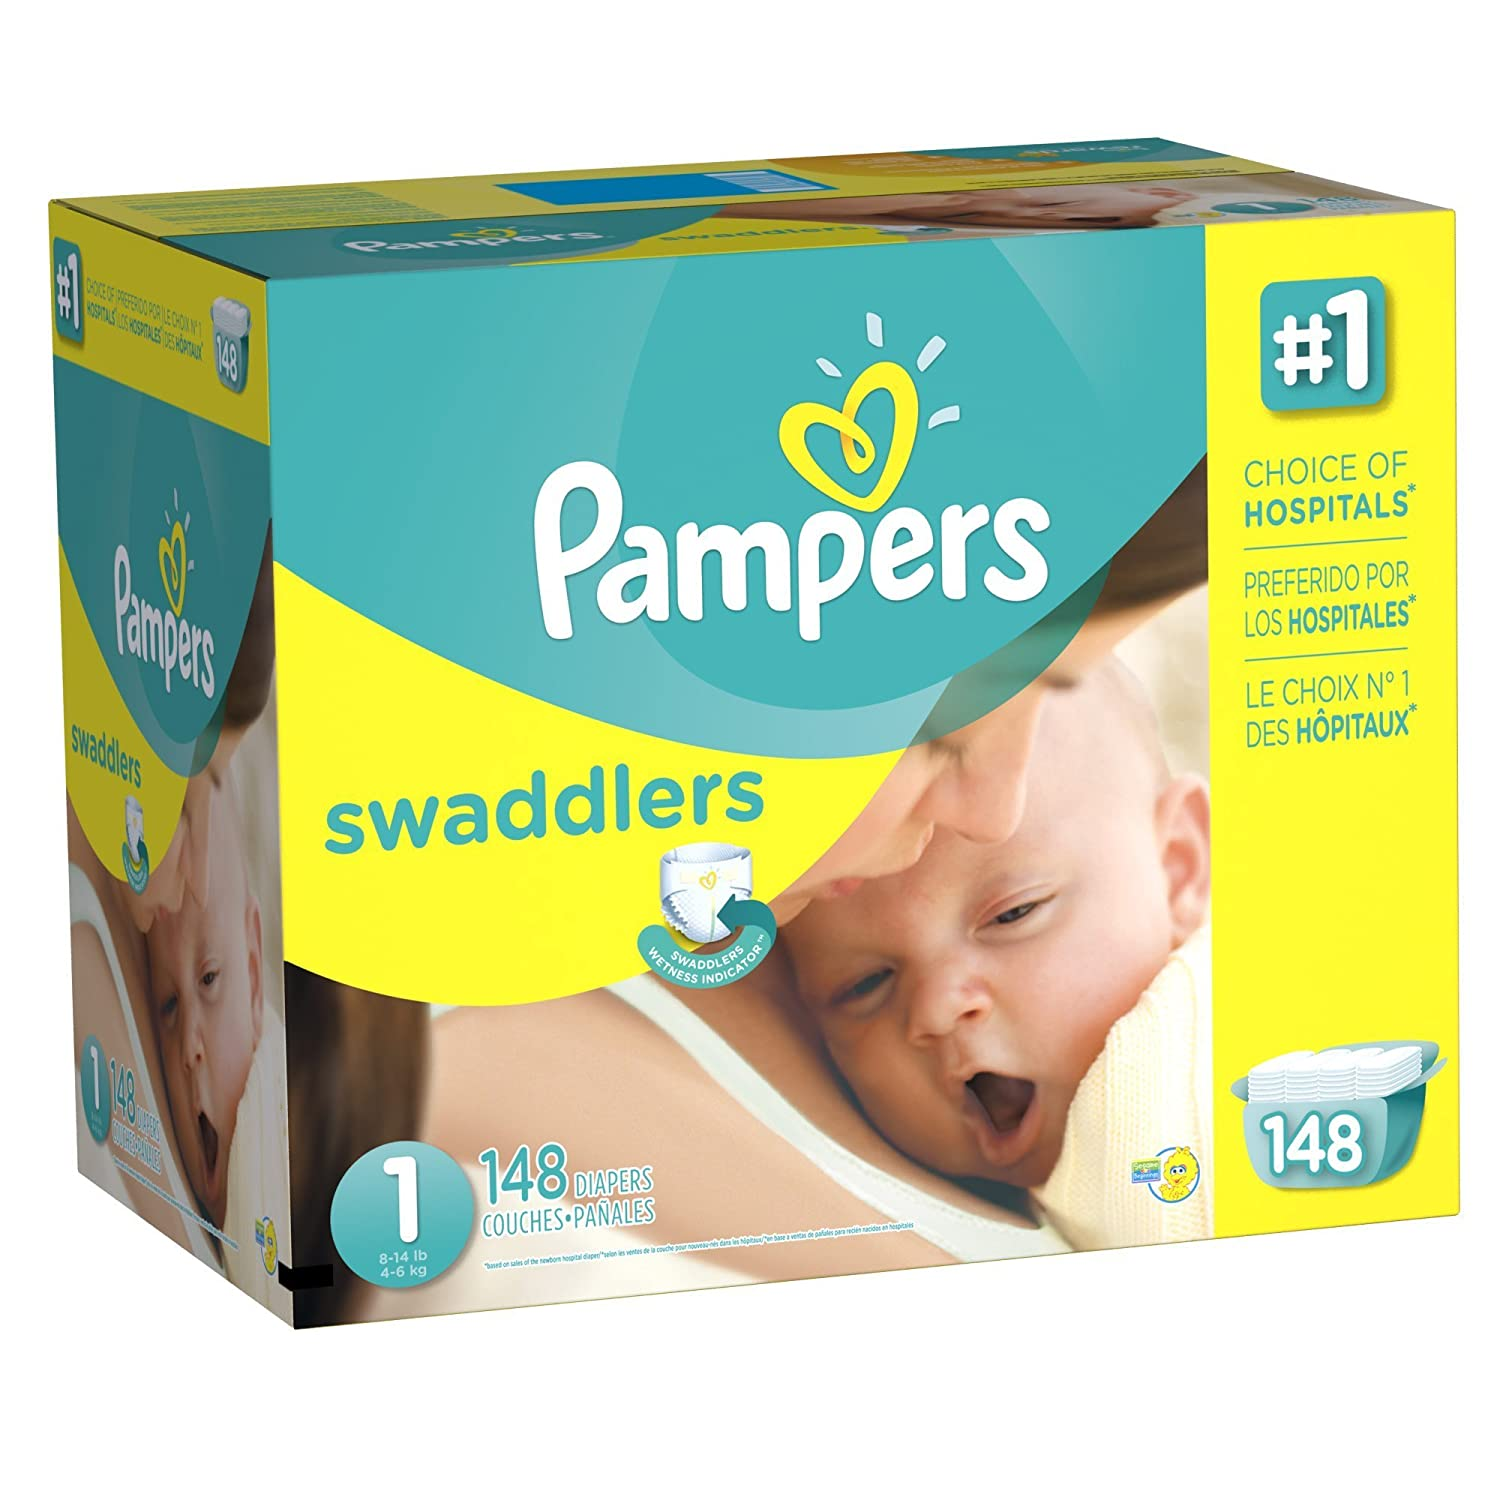 Pampers Swaddlers Diapers Giant Pack, Size 1, 148 Ct: Amazon.com: Grocery & Gourmet Food